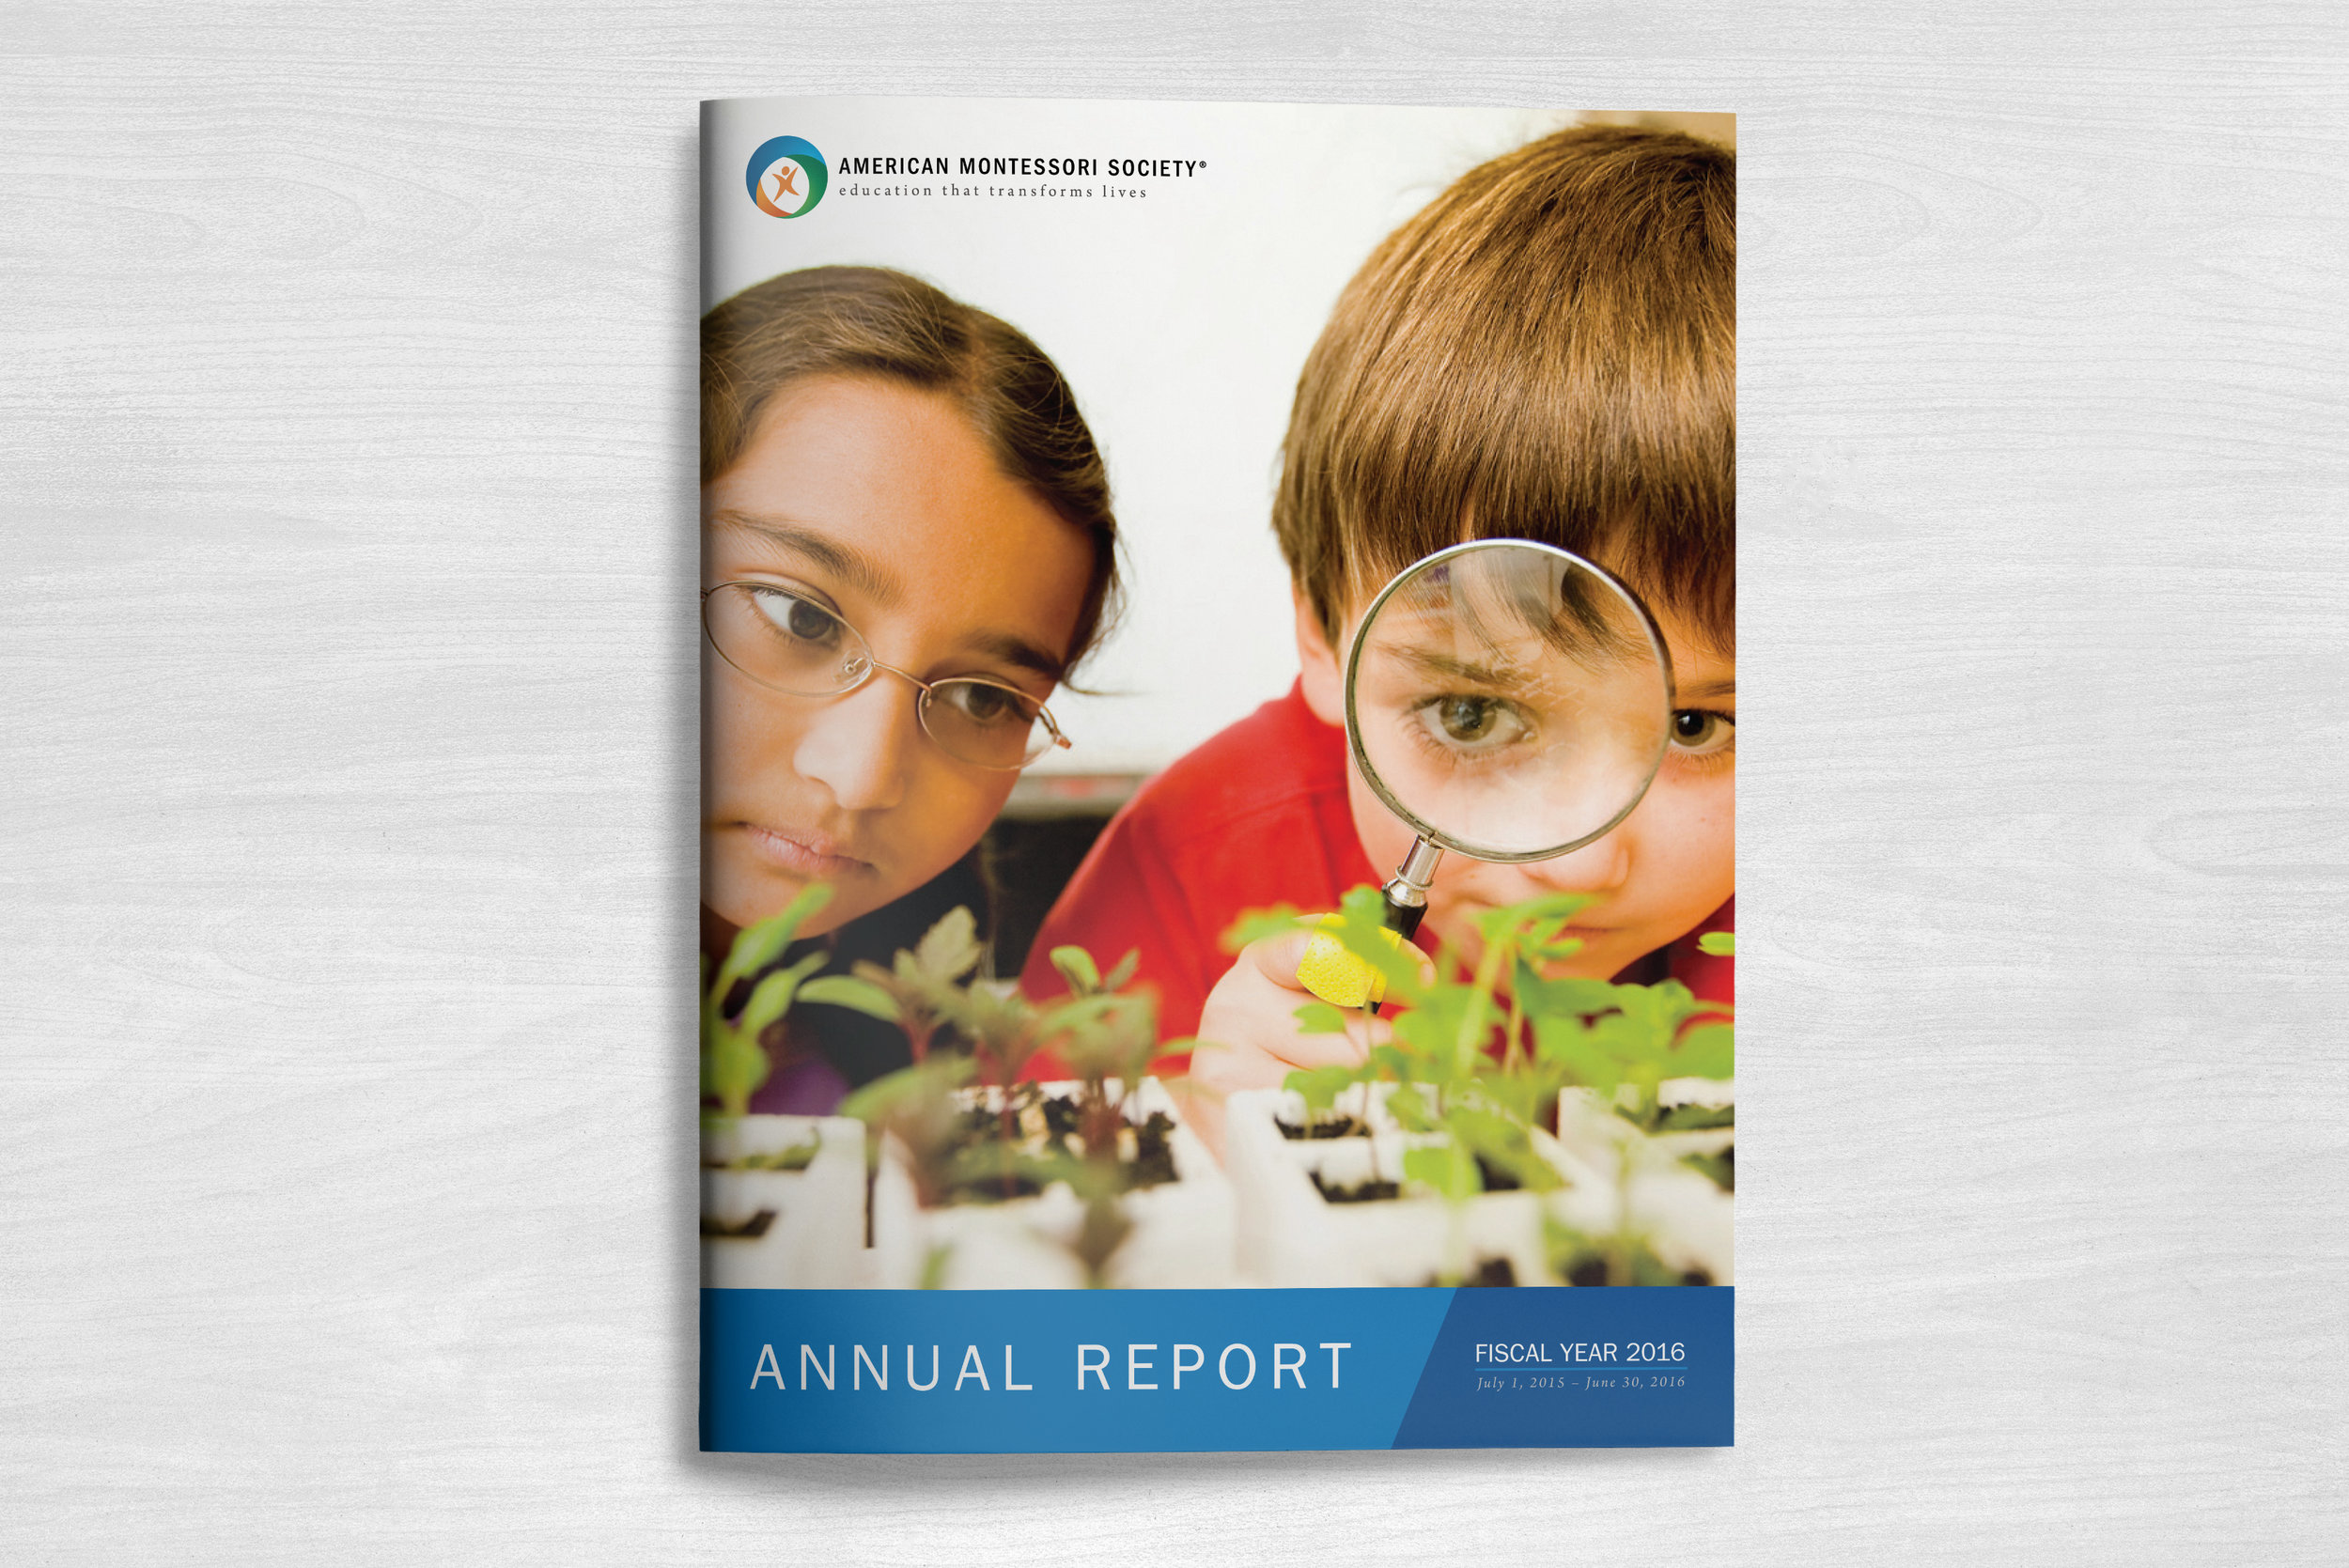 AMS FY 2016 Annual Report Cover